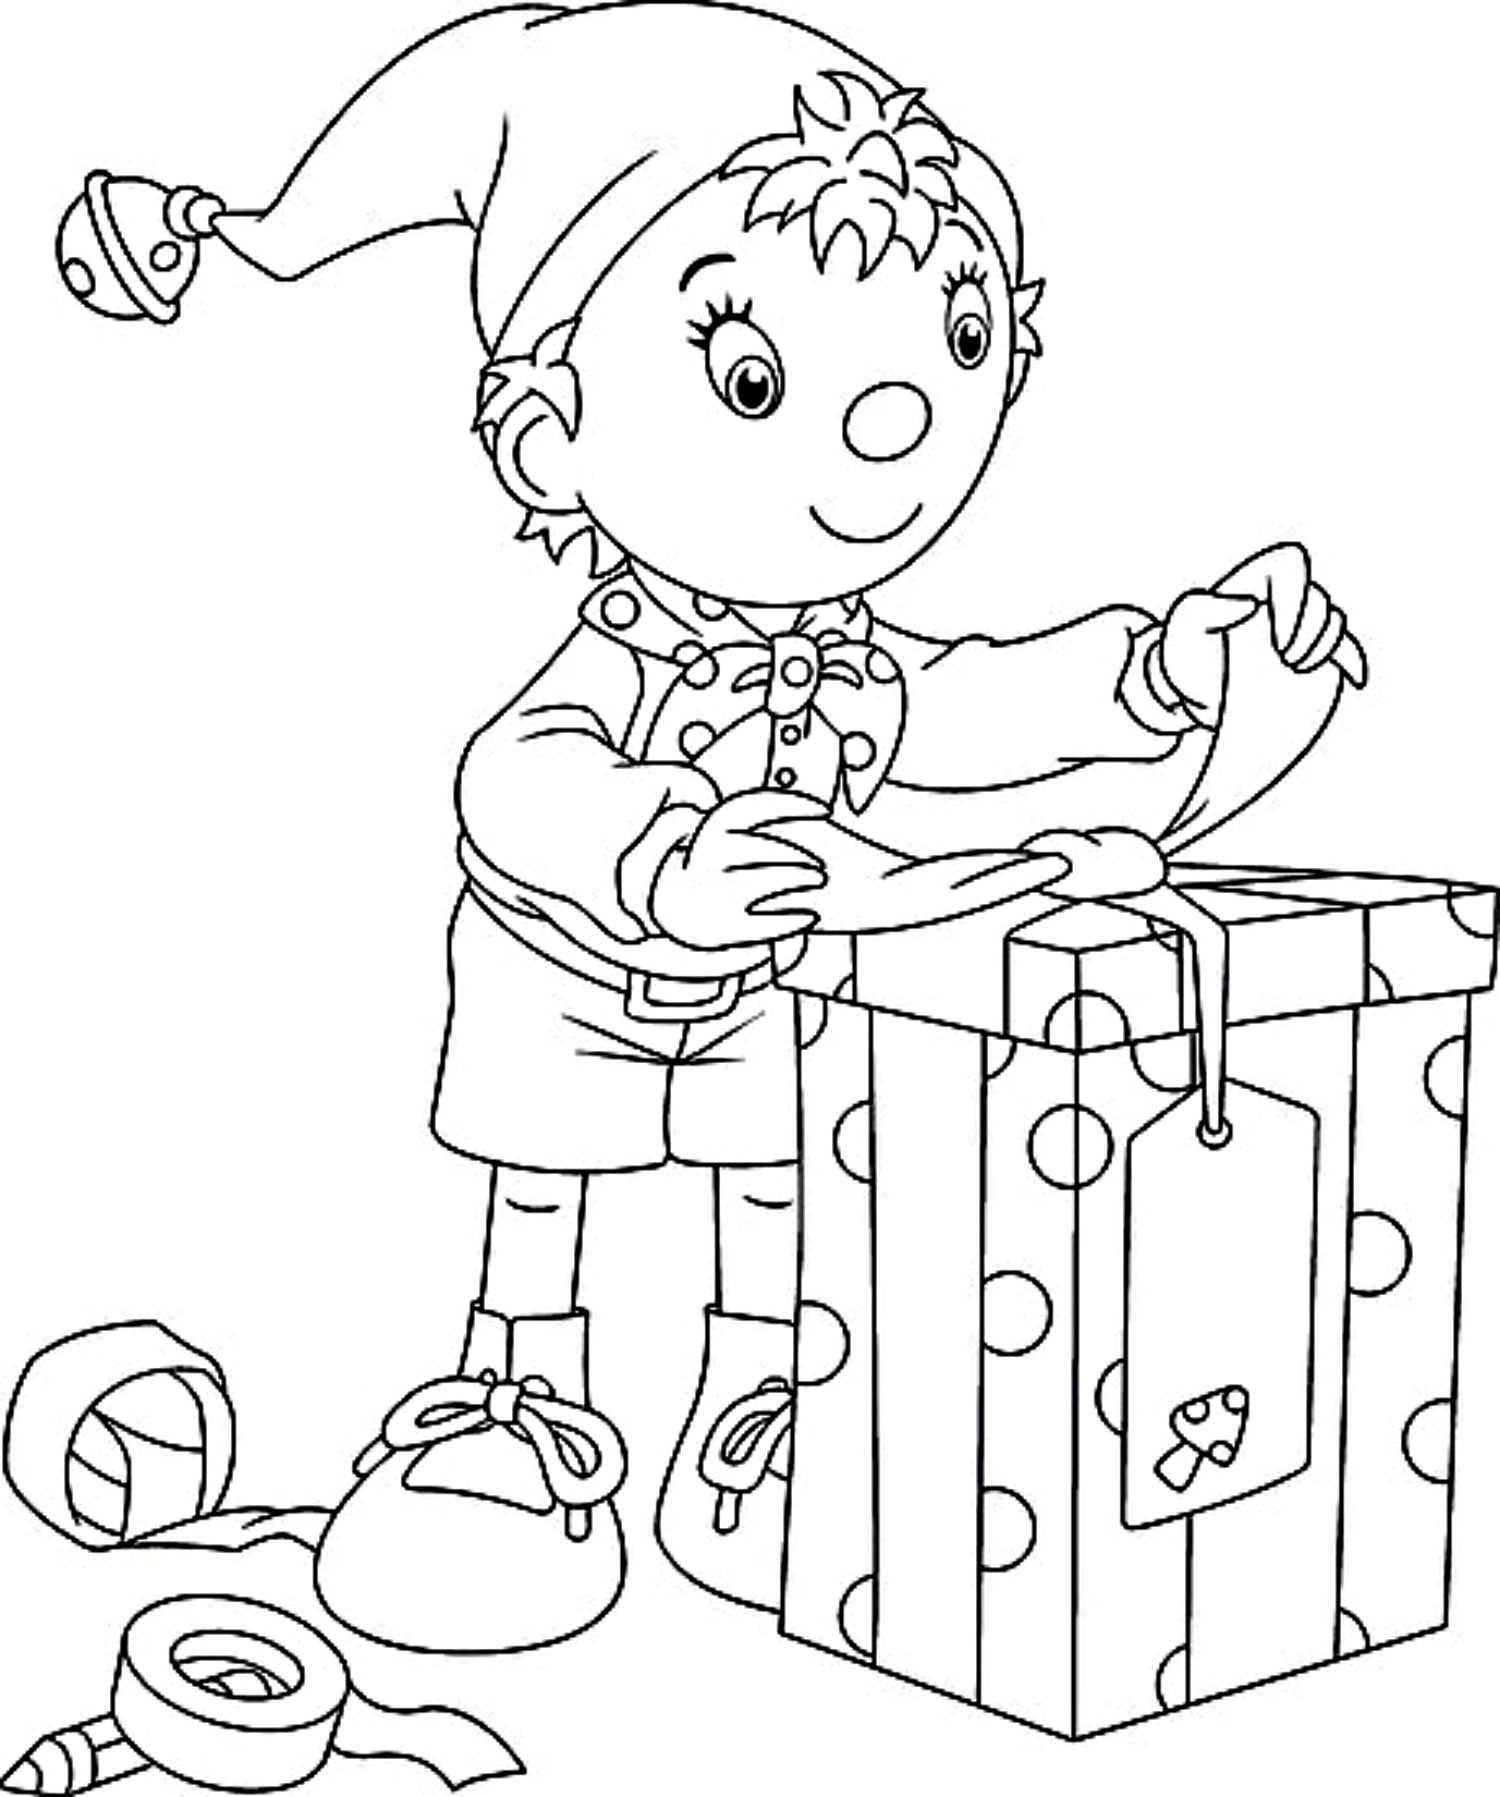 coloring for nursery kids nursery rhyme coloring pages kidsuki nursery coloring for kids